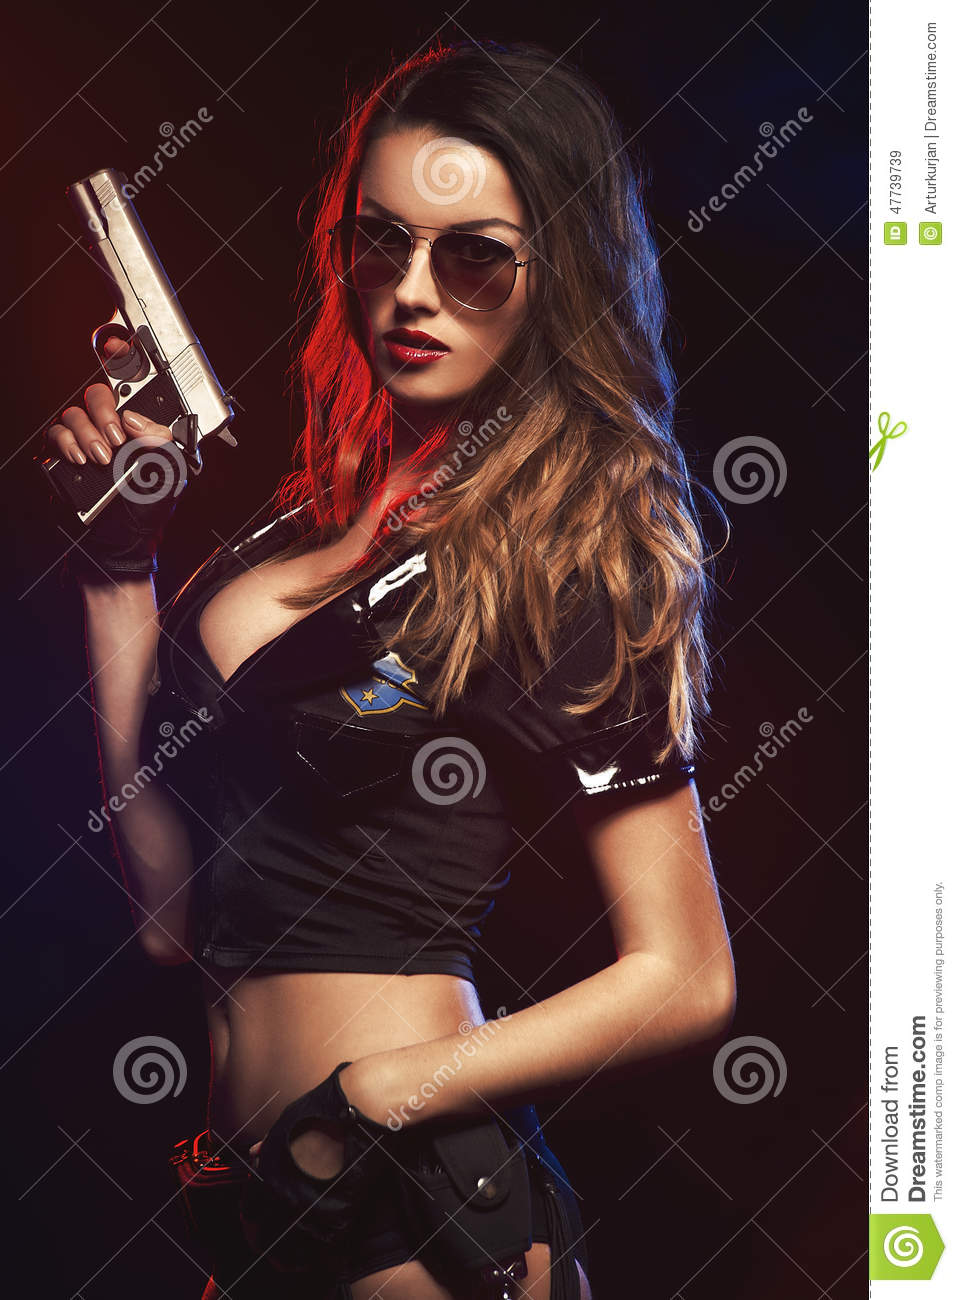 woman with police uniform